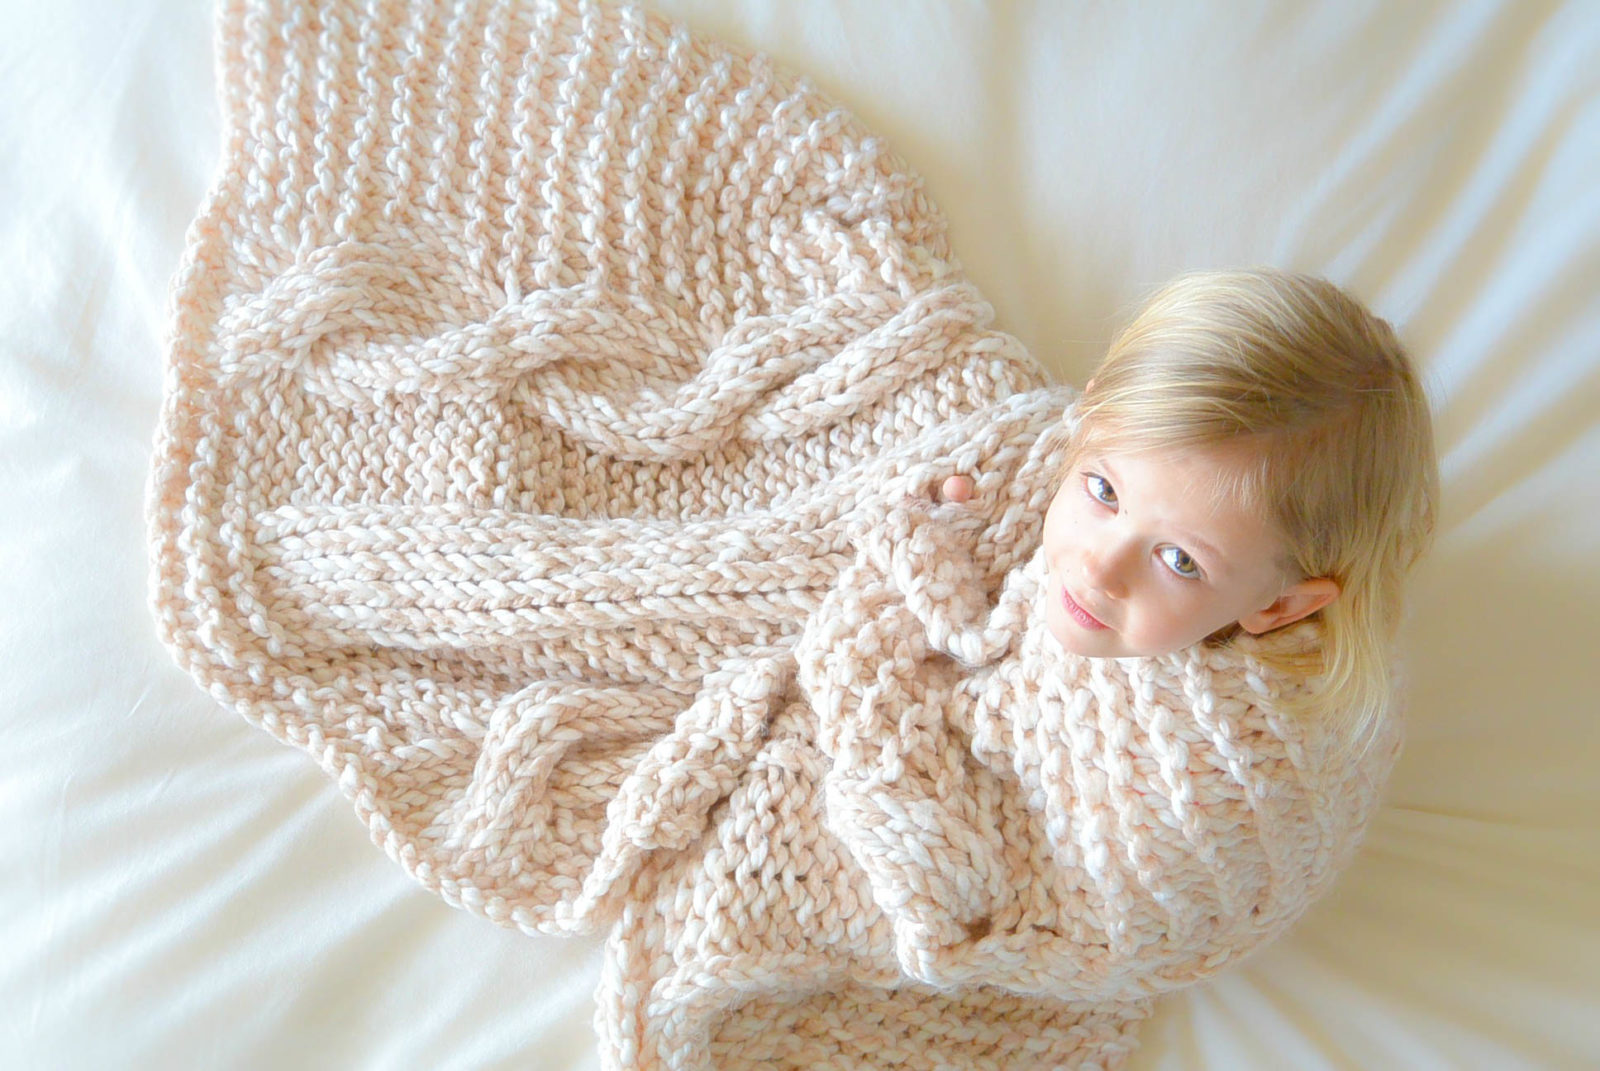 Easy Knitting Blanket Patterns : Endless Cables Chunky Knit Throw Pattern   Mama In A Stitch